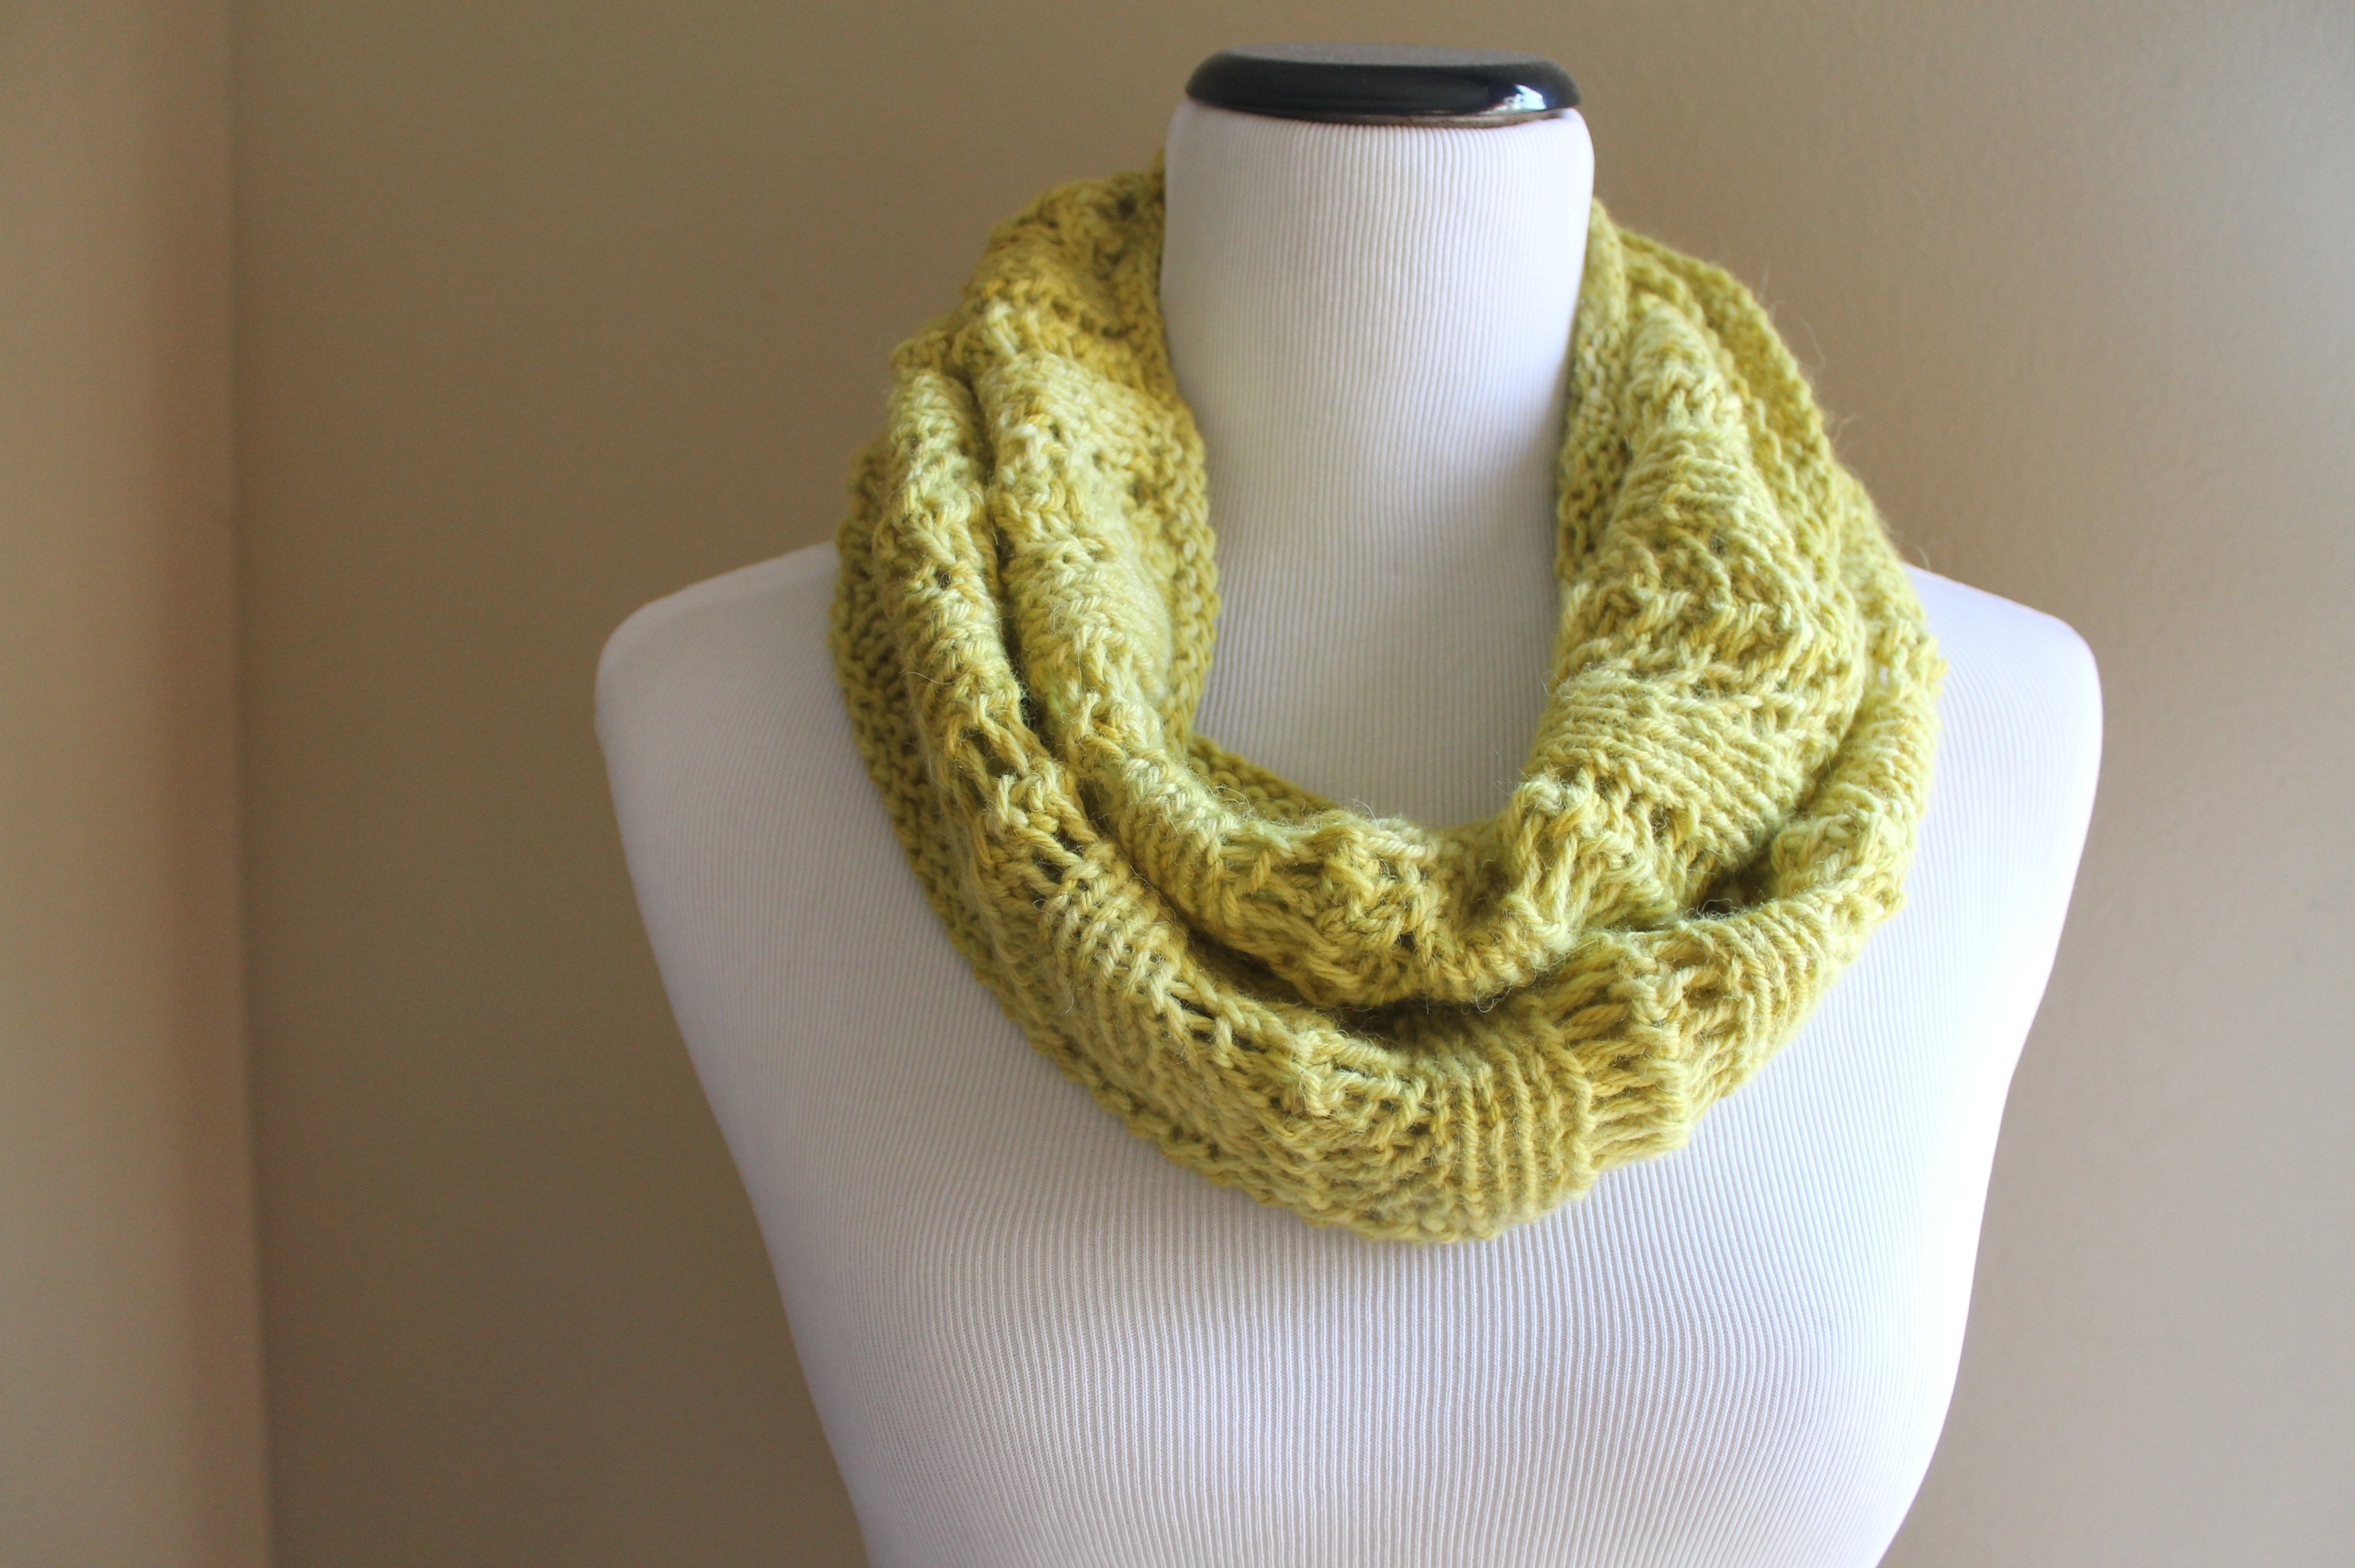 Knit Lace Cowl Pattern : Tuscany Lace Cowl Knitting Pattern   Handmade by Anne Potter